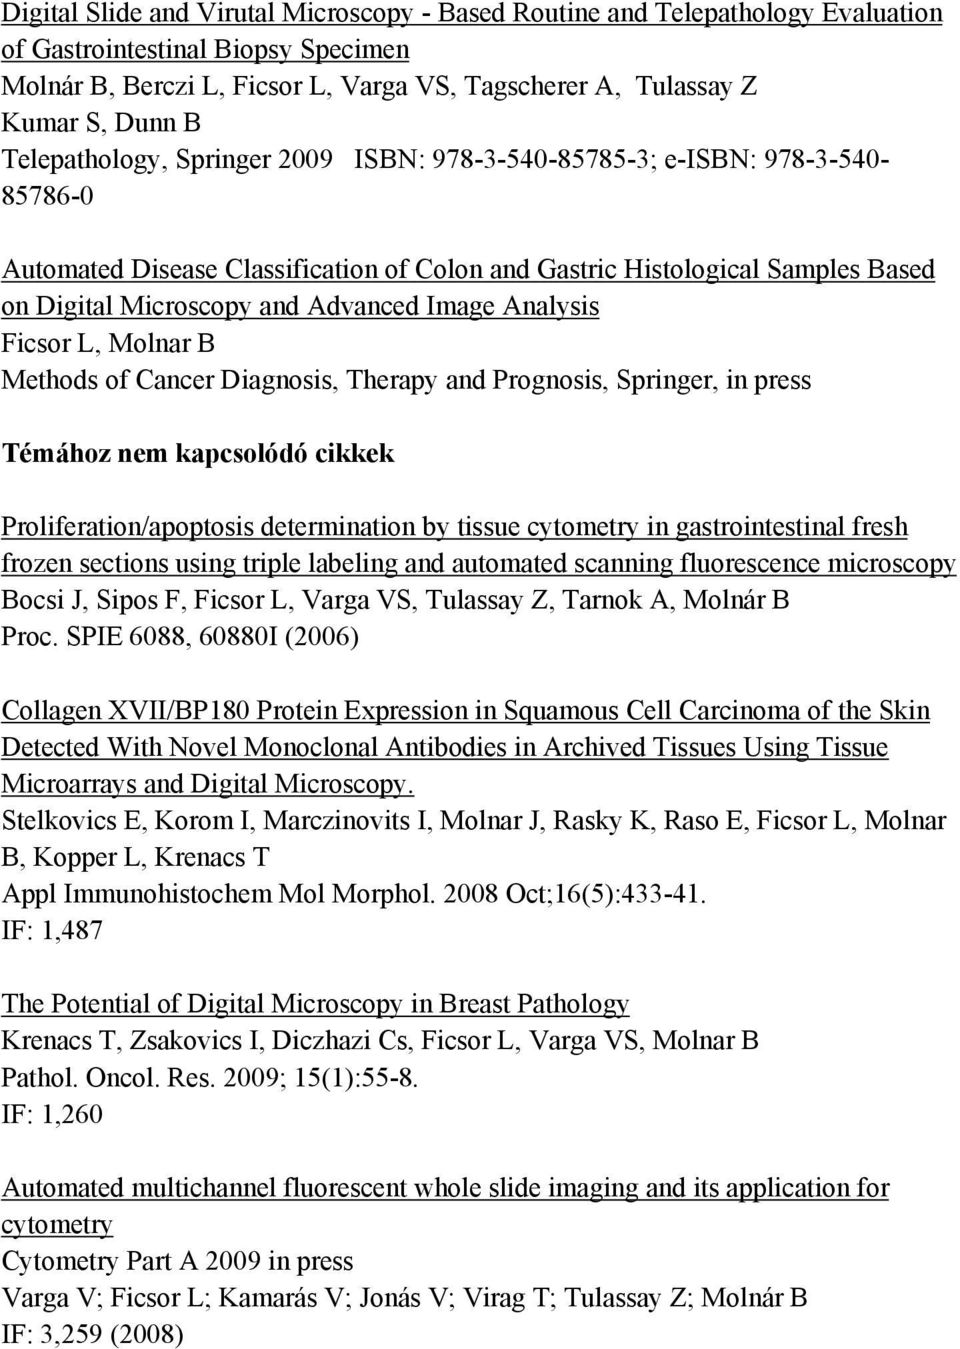 Image Analysis Ficsor L, Molnar B Methods of Cancer Diagnosis, Therapy and Prognosis, Springer, in press Témához nem kapcsolódó cikkek Proliferation/apoptosis determination by tissue cytometry in